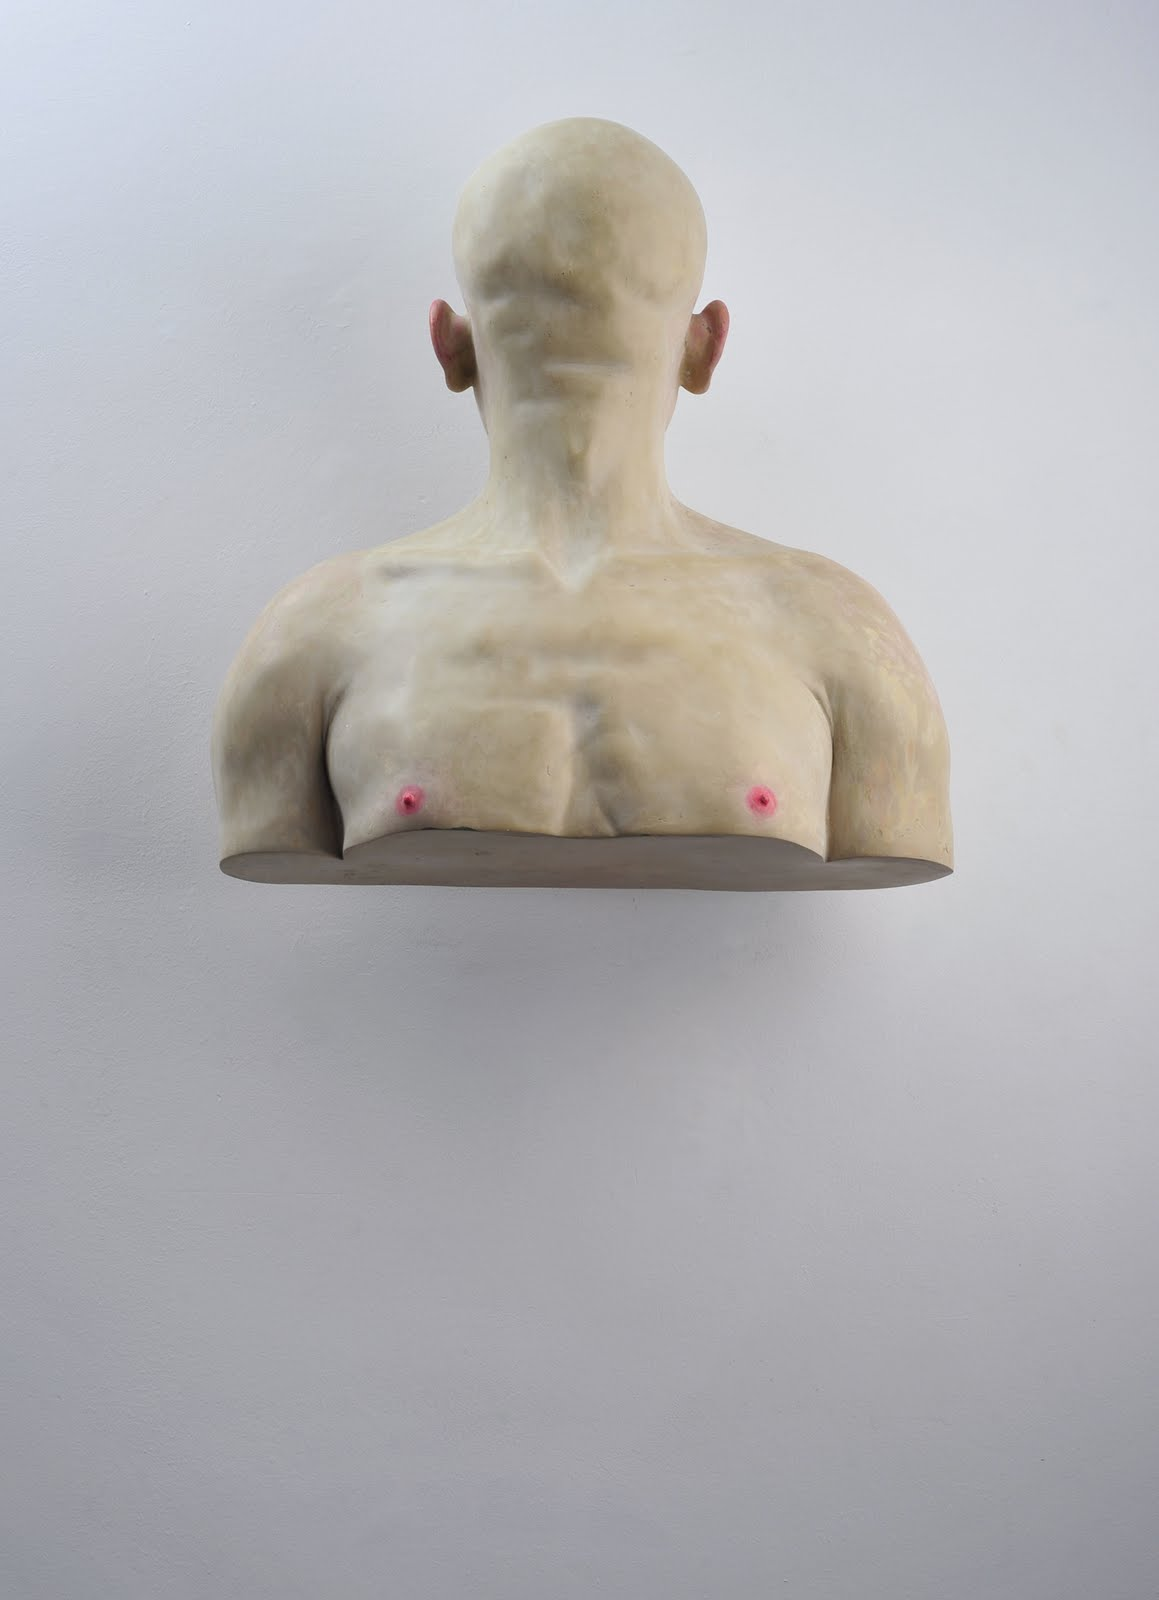 Bogdan Rata, Self to the Wall, 2008, 62 cm (height), 58 cm (width), 24 cm (depth)